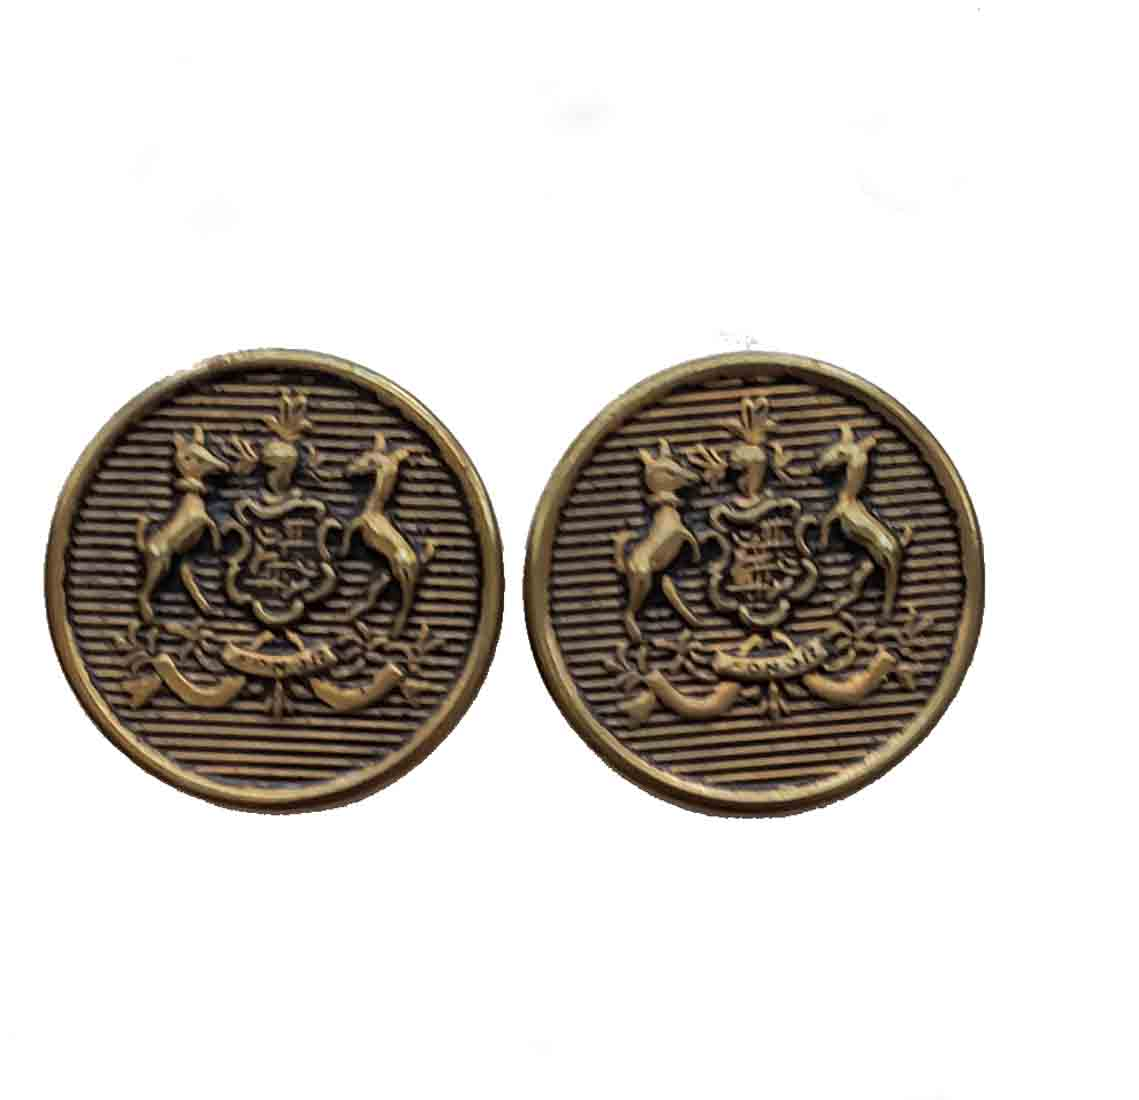 Two Vintage Southwick Blazer Buttons Antique Gold Brass Shank Dogs Honor Shield Men's